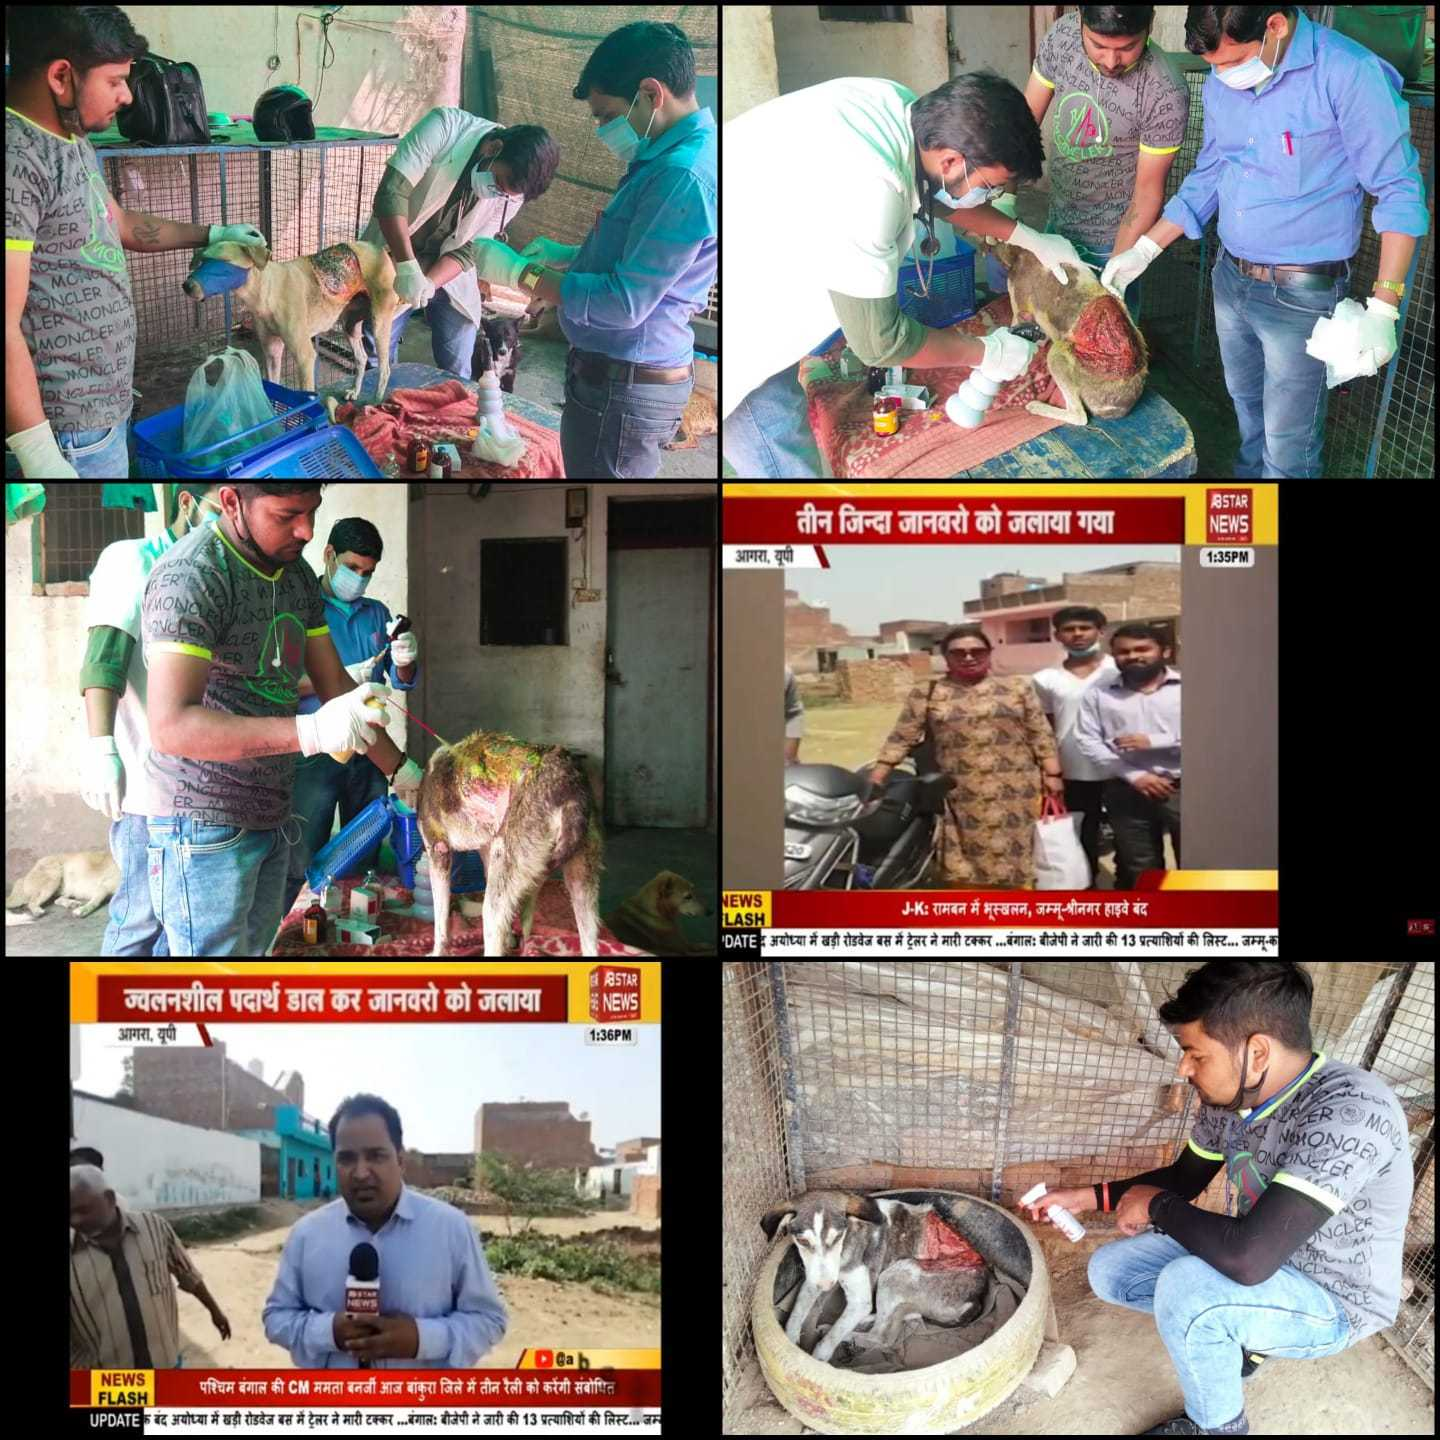 Humanity reached its lowest point when three innocent dogs were attacked by acid at village Khandauli in the dead of the night. The culprits ran away and the case was reported to us on our helpline. The dogs were rescued and brought to the shelter for their treatment, which is a long, tedious and painful road ahead. Also our struggle is on for filing official complaint at the local thana, which has proven to be quite unsuccessful so far.